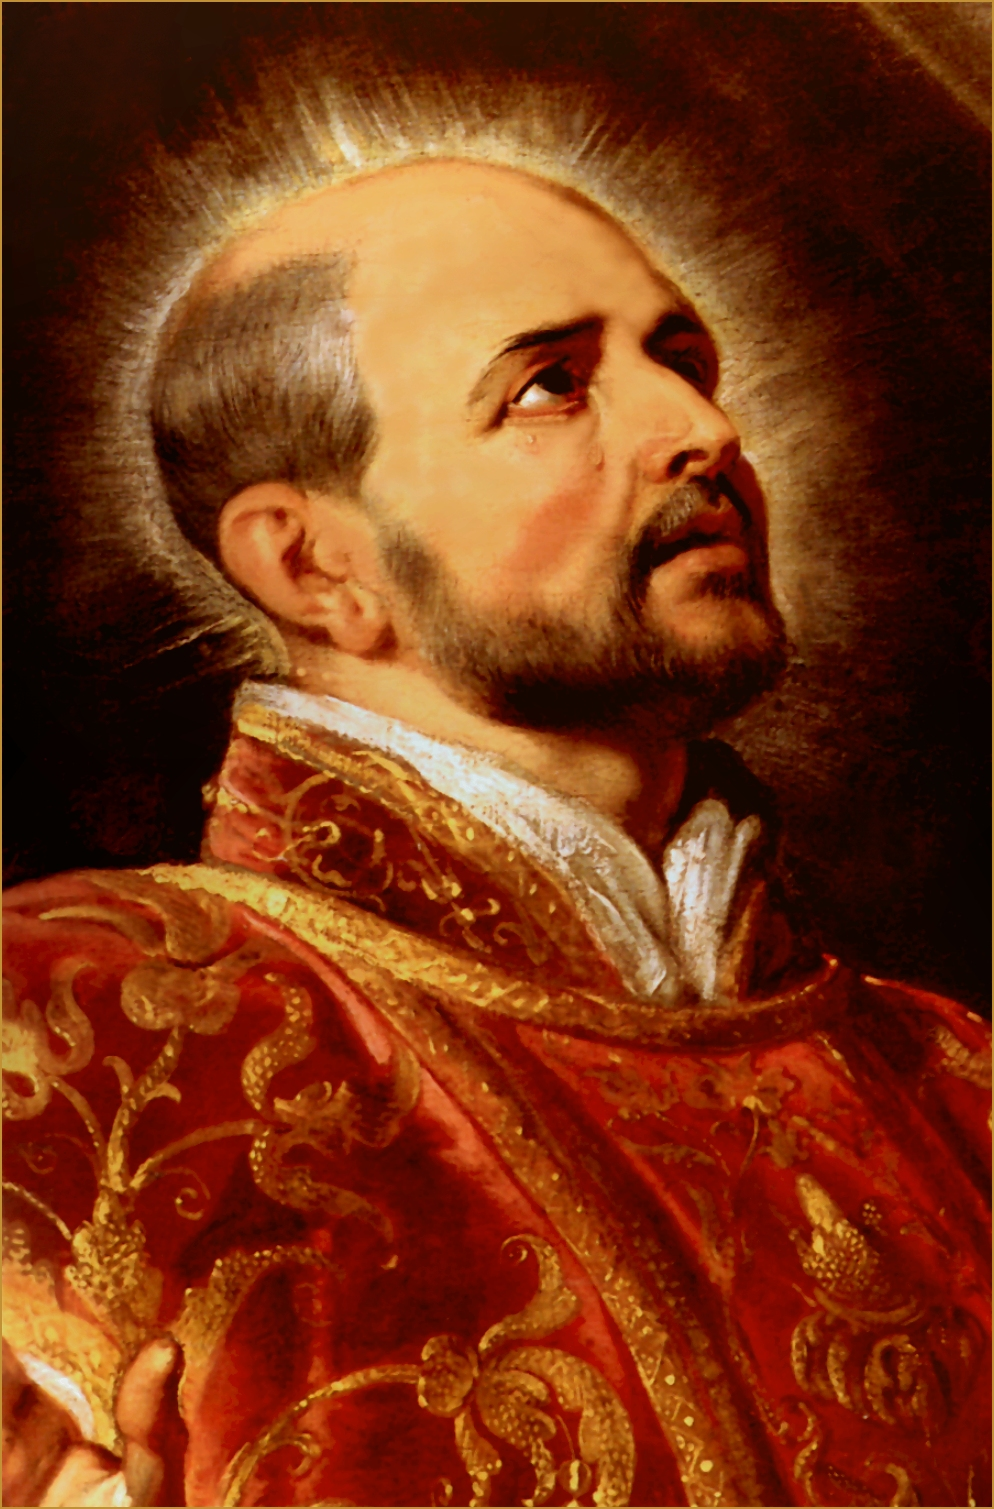 st ignatius loyola St ignatius of loyola: saint ignatius of loyola, spanish theologian, highly influential figure in the catholic reformation of the 16th century, and founder of the jesuits.